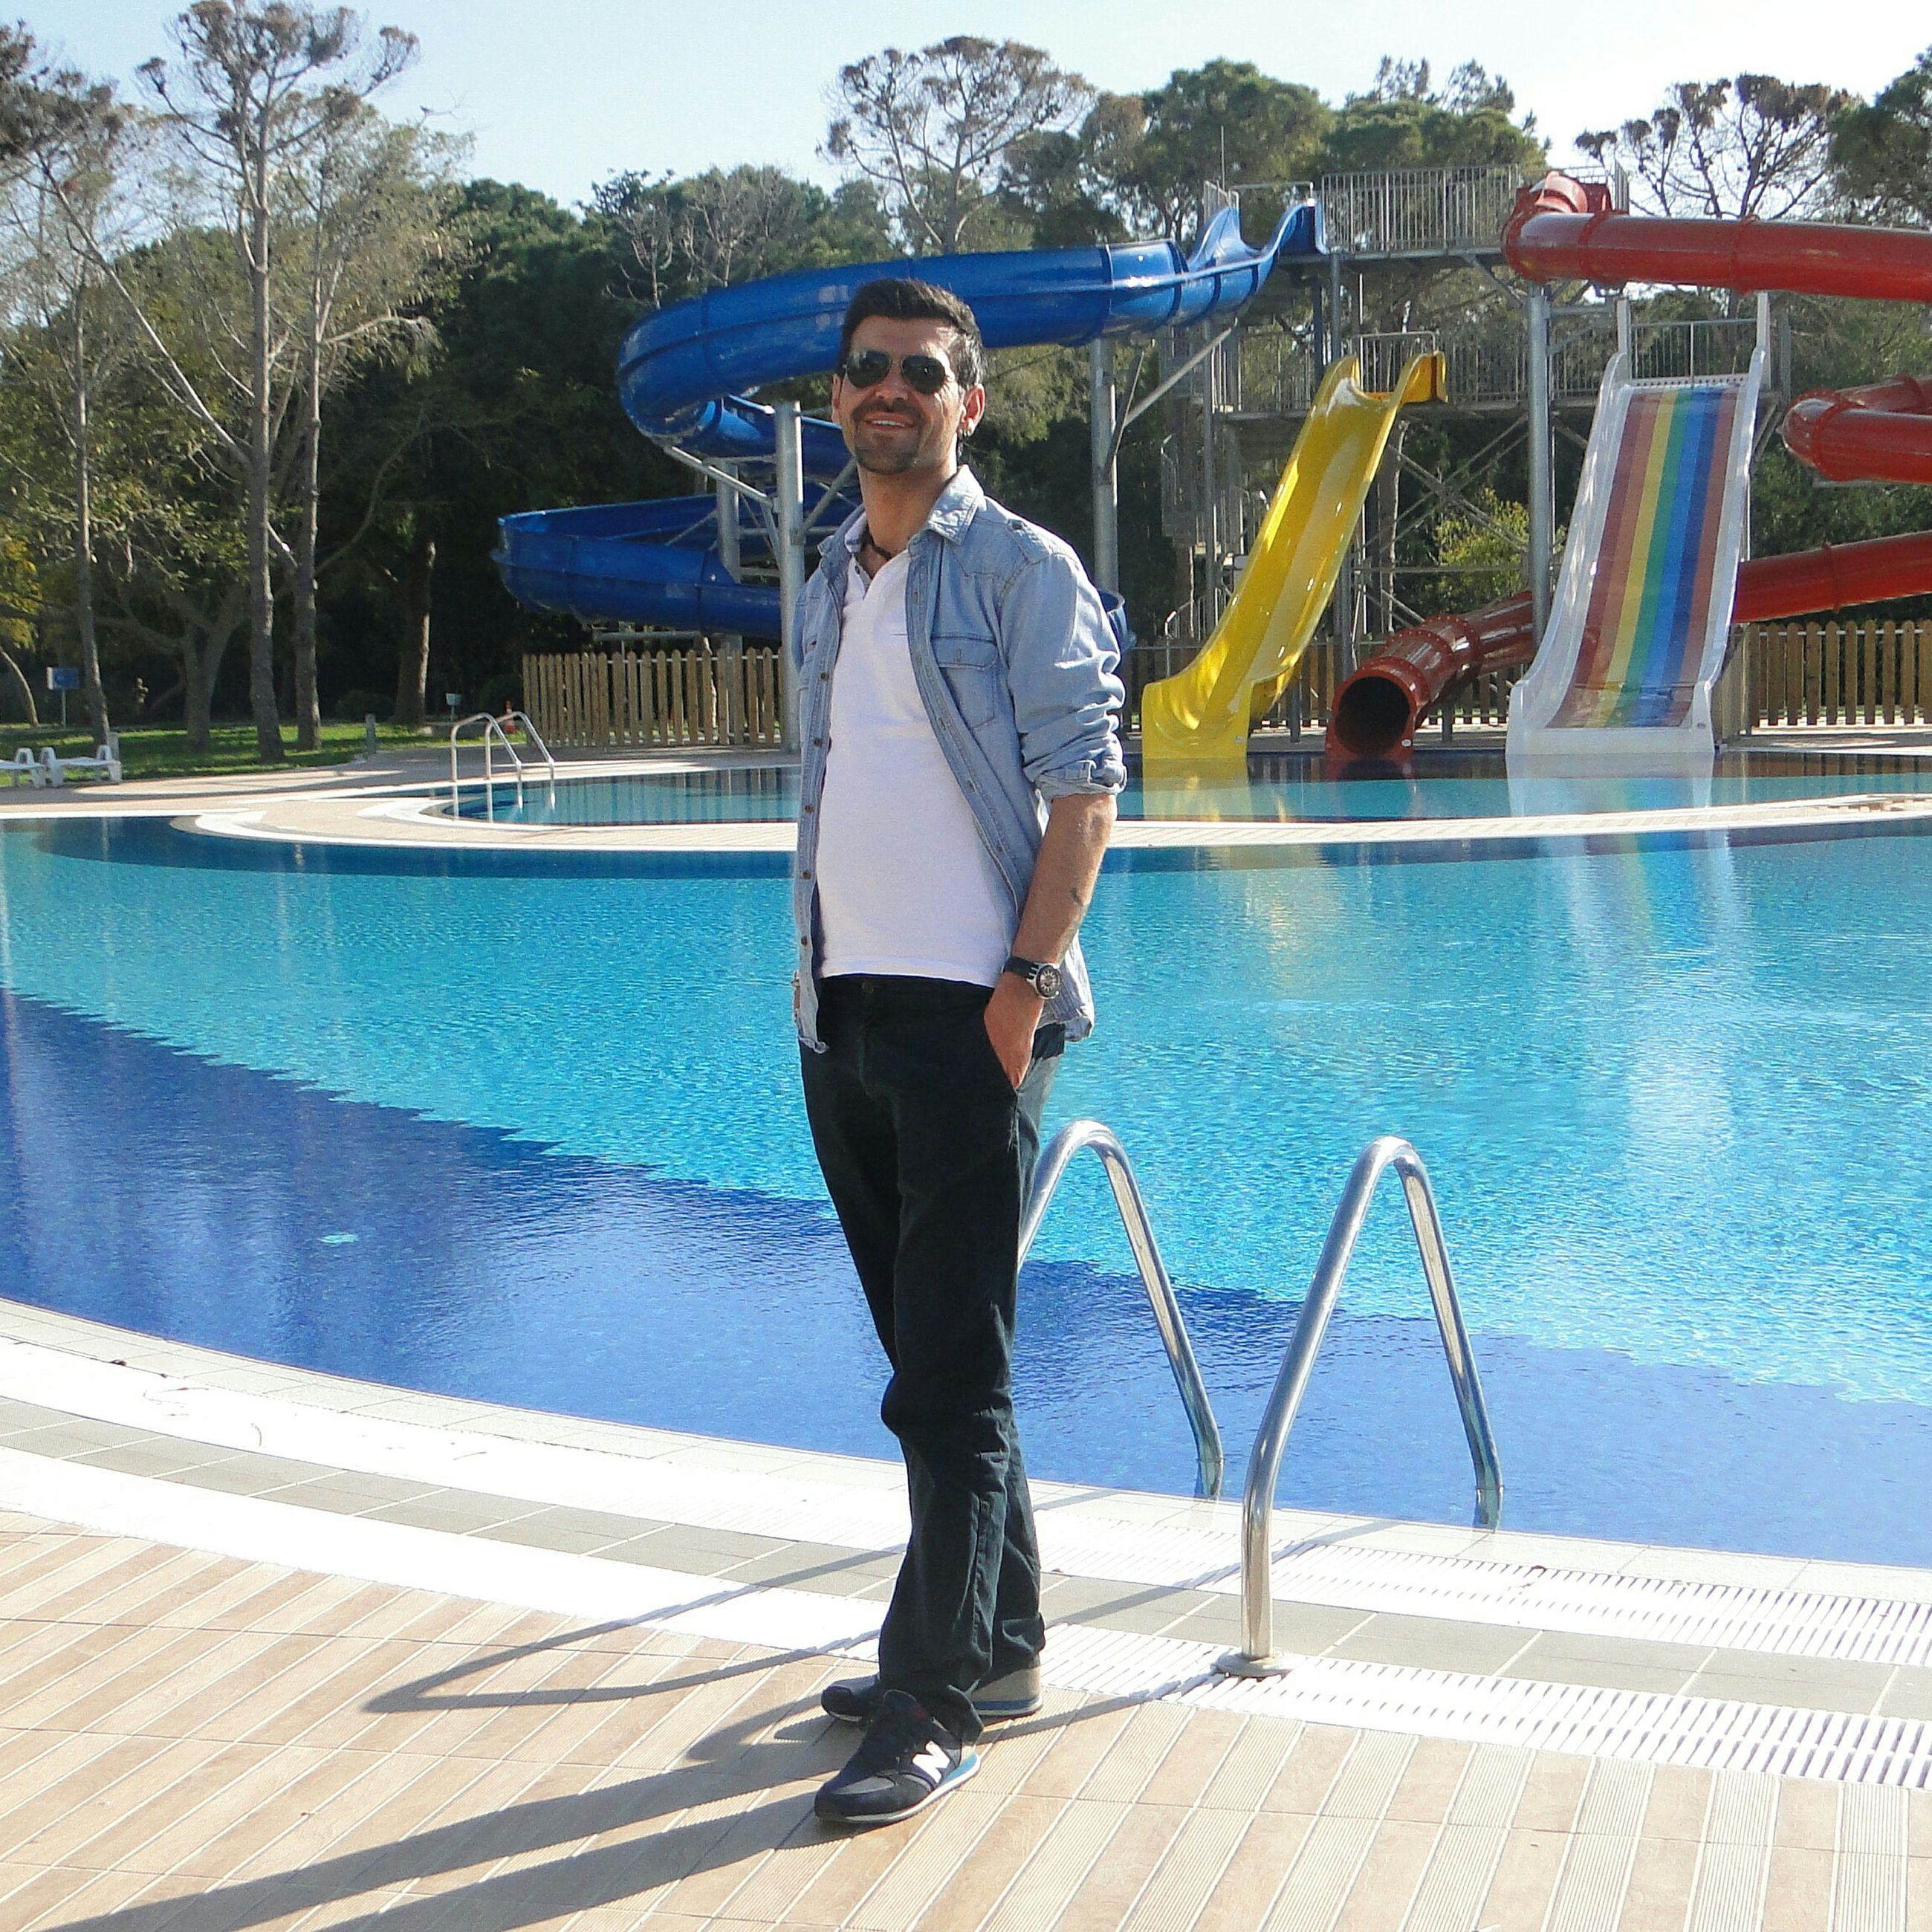 young adult, person, full length, lifestyles, casual clothing, looking at camera, water, leisure activity, portrait, front view, sunglasses, young men, standing, built structure, smiling, railing, building exterior